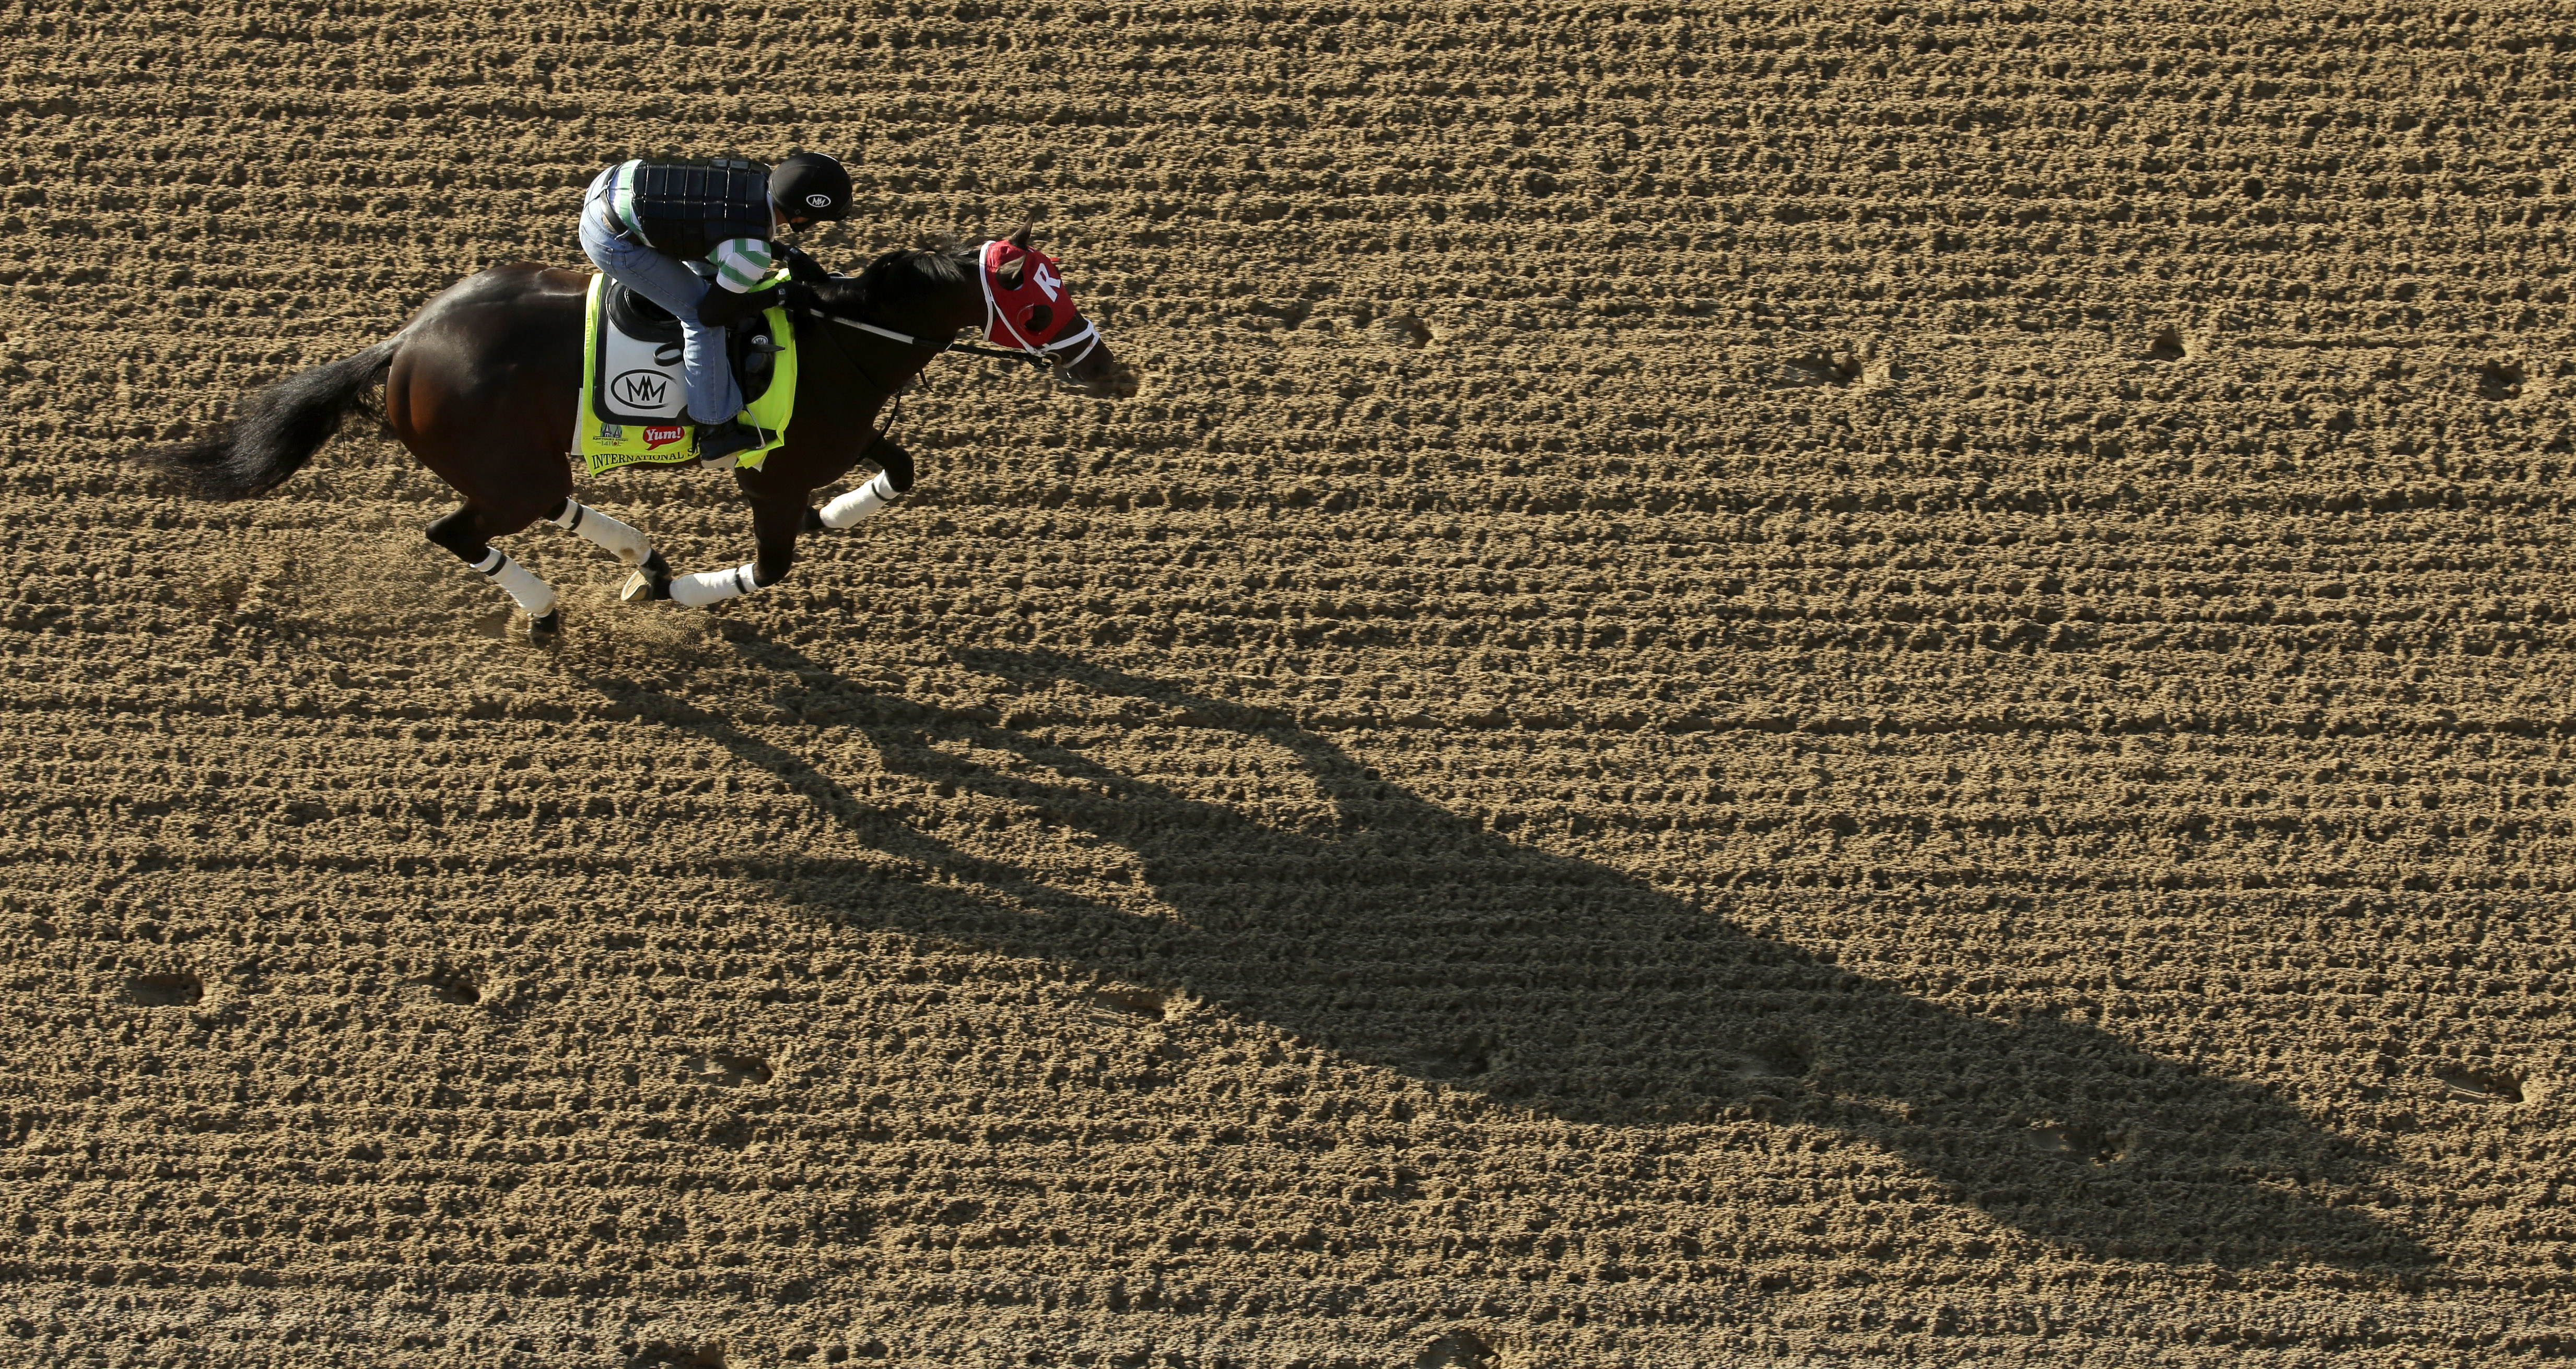 Exercise rider Joel Barrientos rides Kentucky Derby hopeful International Star during a workout at Churchill Downs Wednesday, April 29, 2015, in Louisville, Ky. (AP Photo/Charlie Riedel)